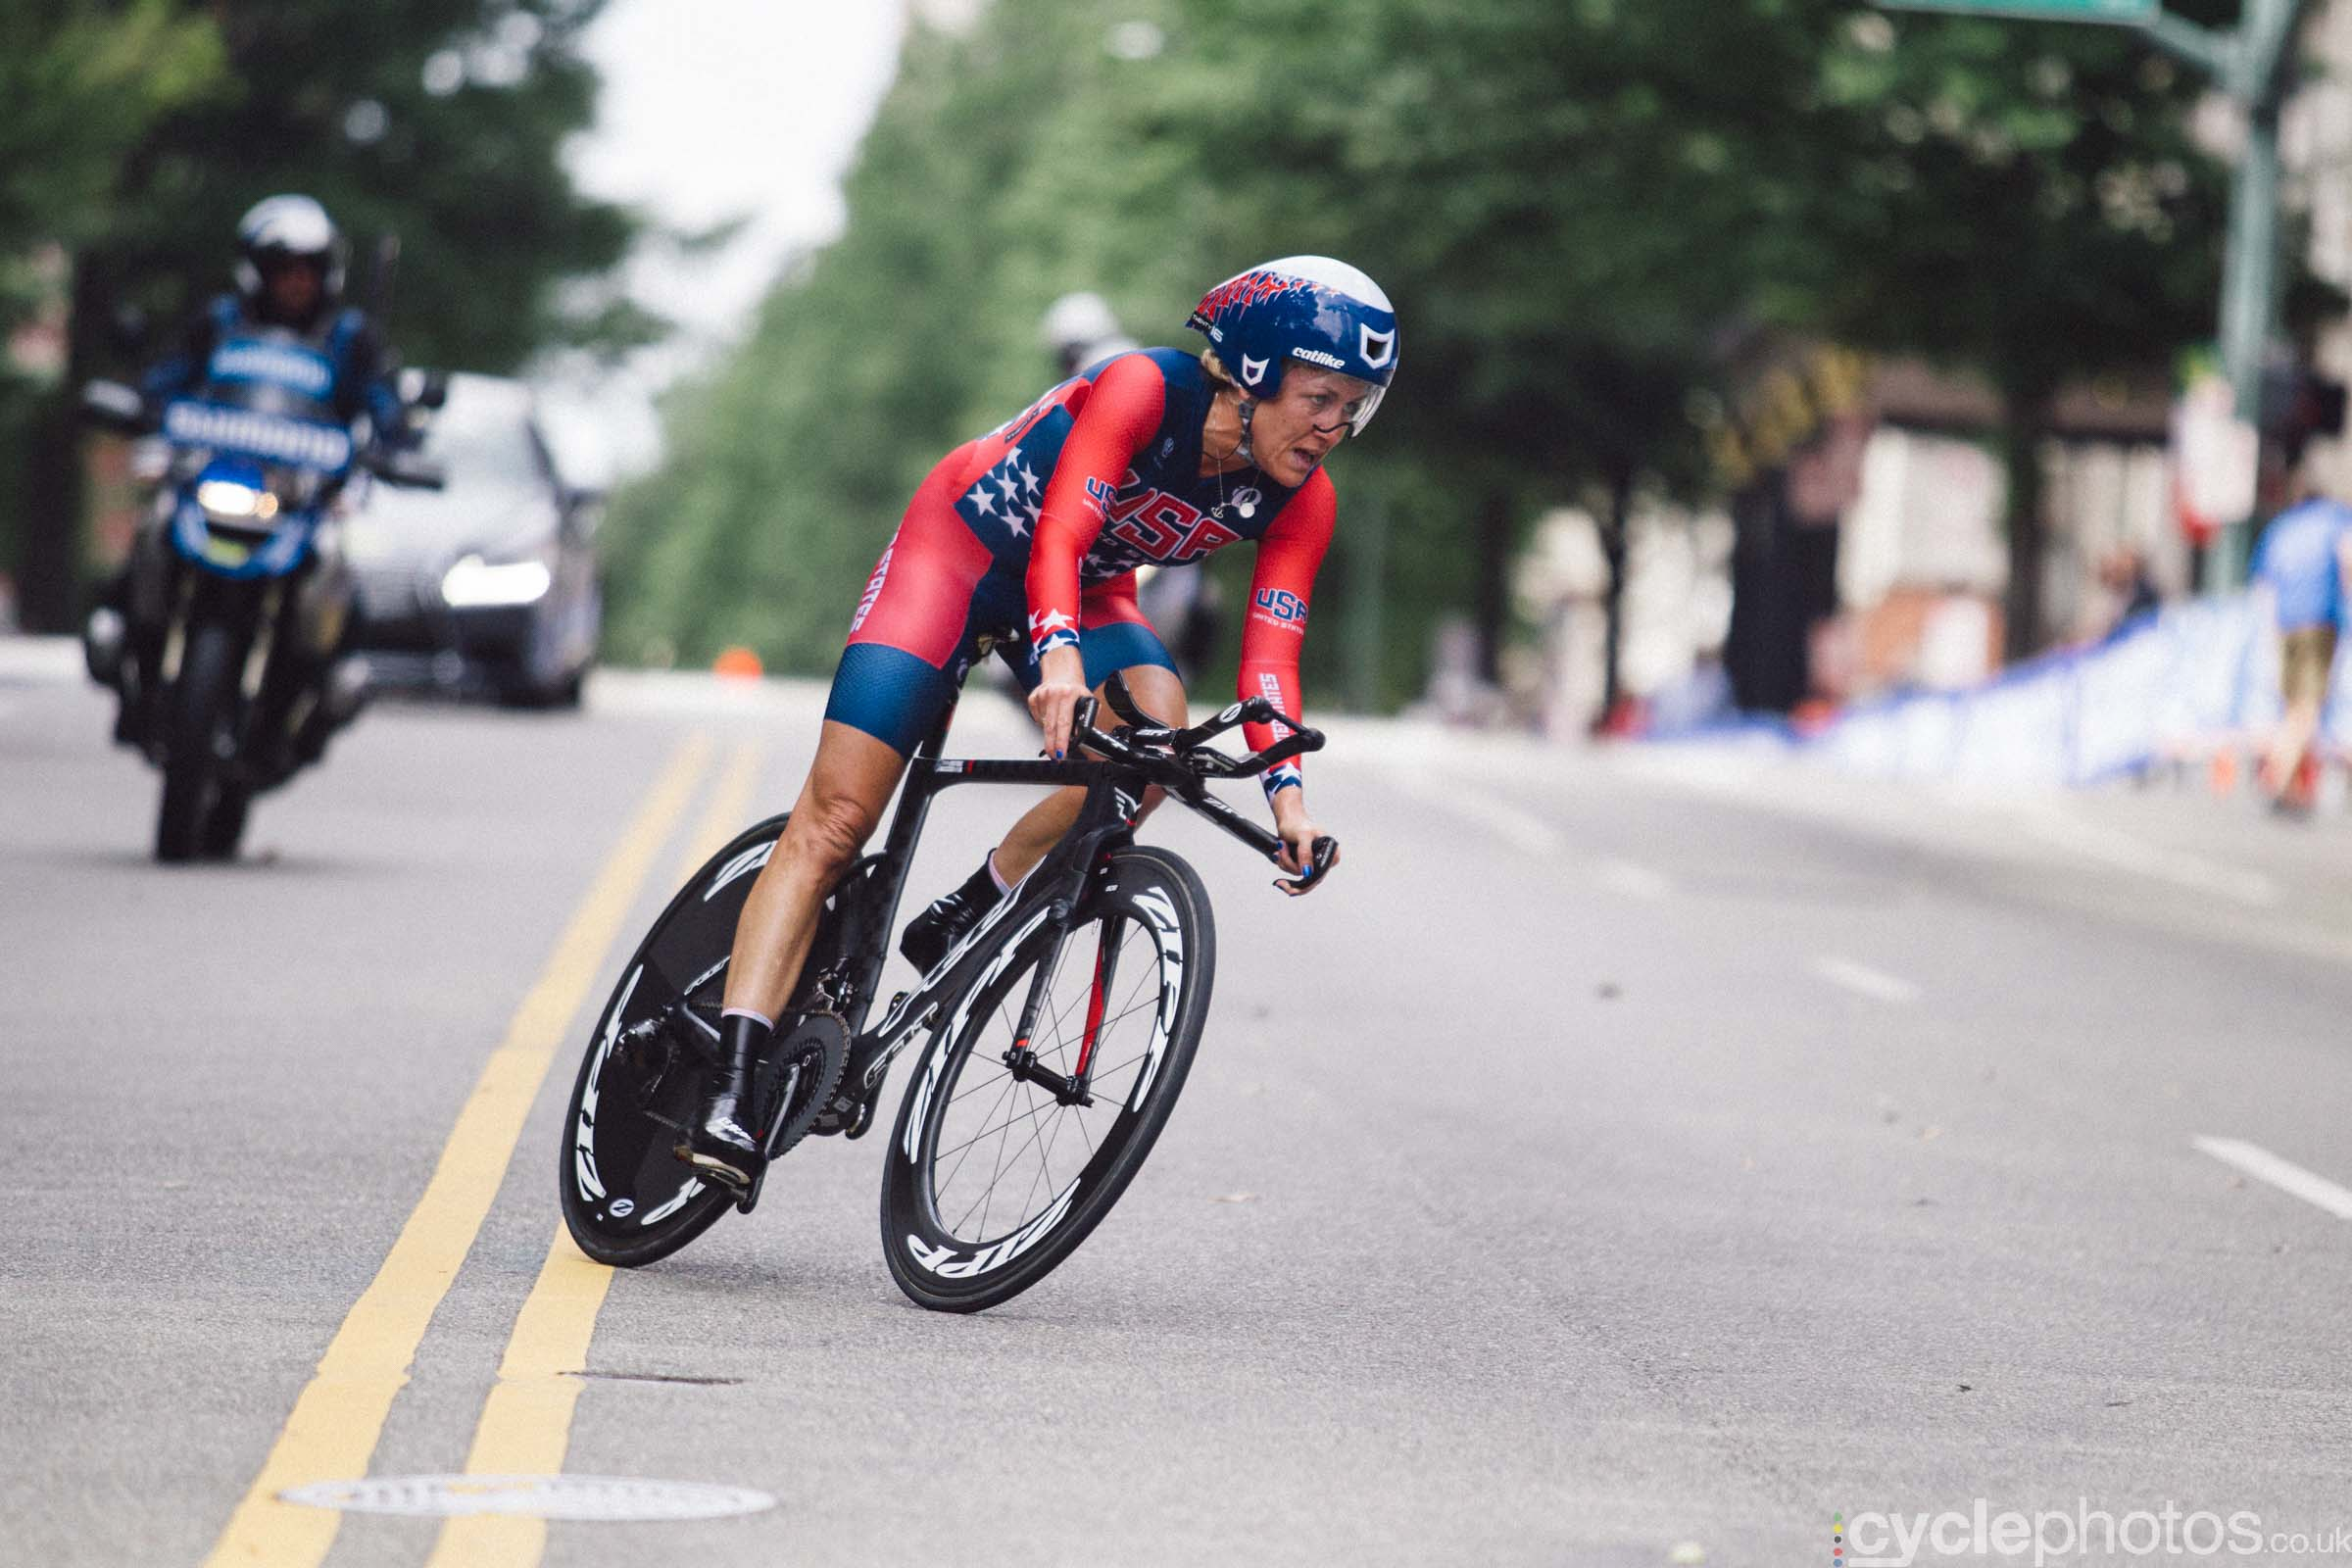 cyclephotos-world-champs-richmond-141019